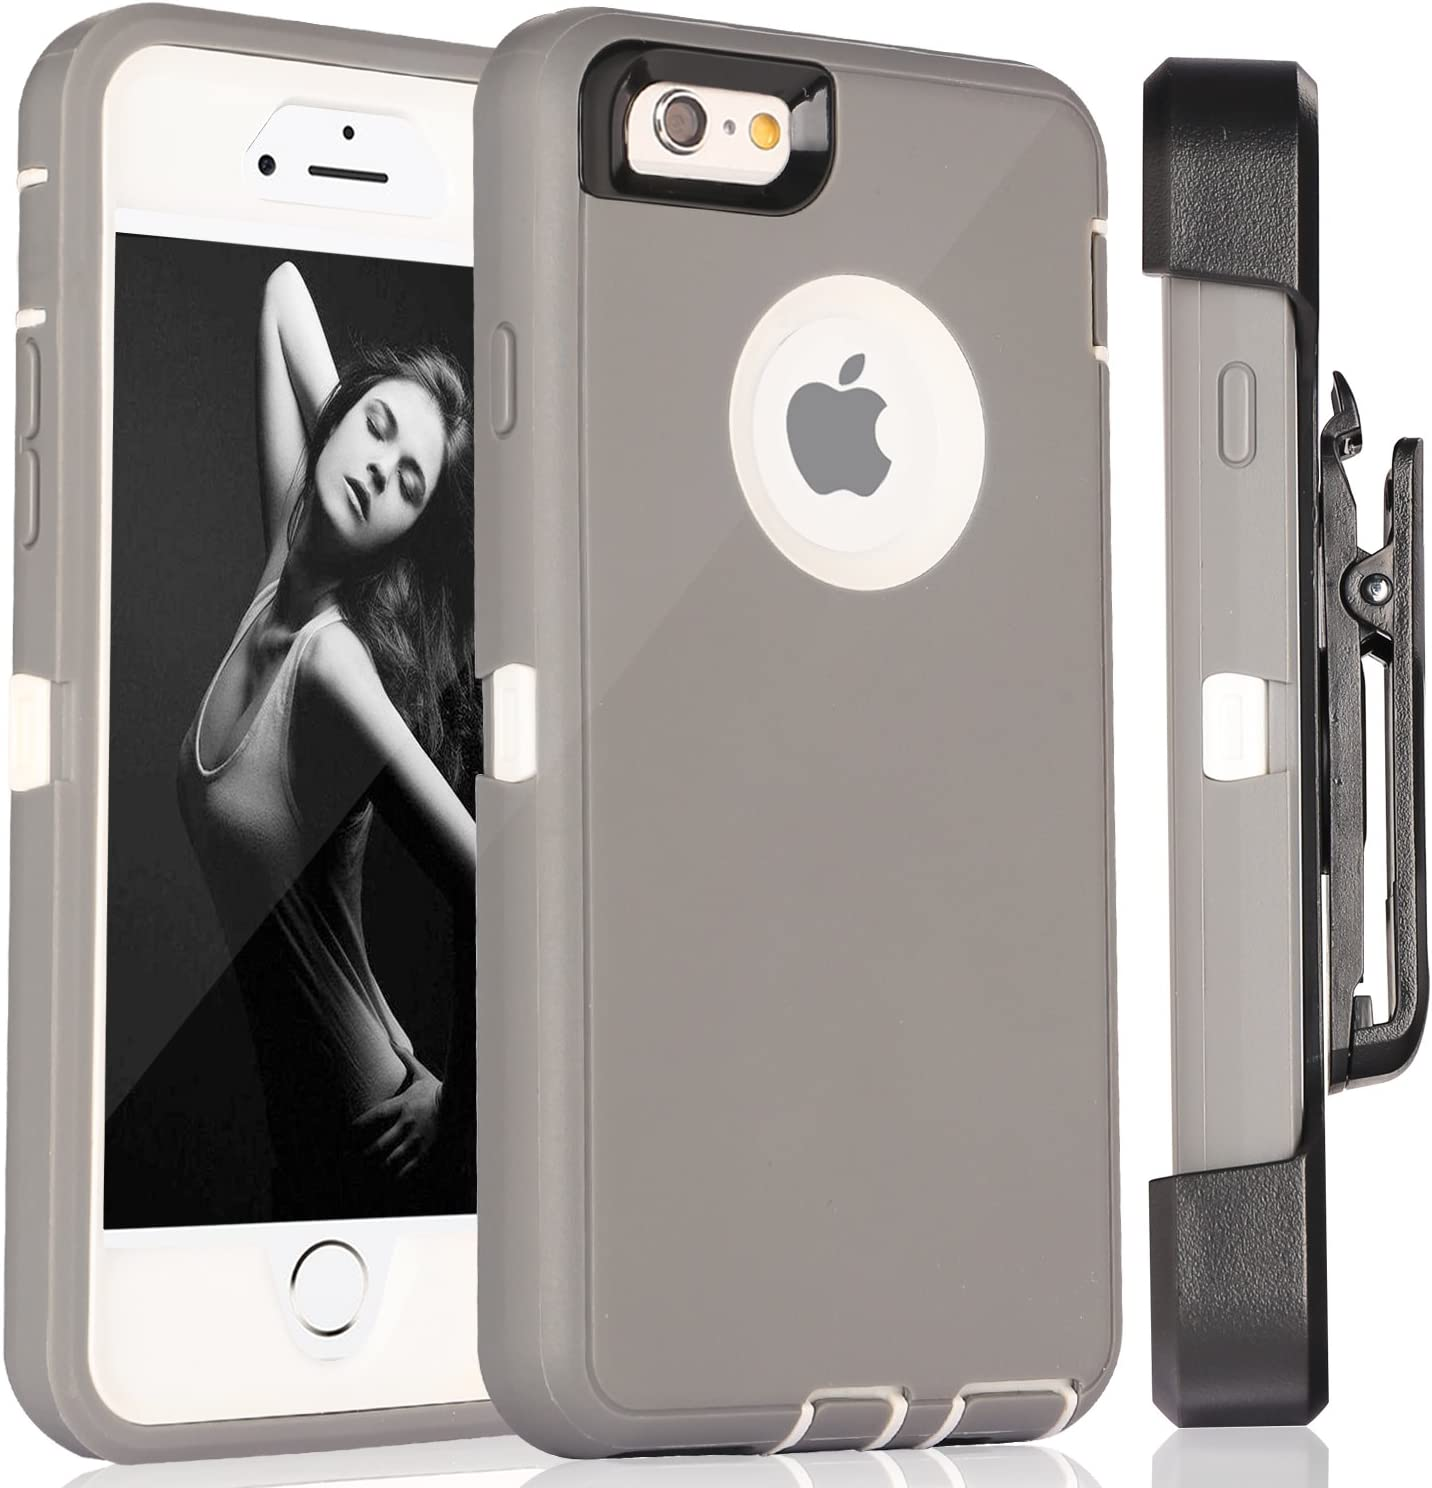 iPhone 6 Case, Fogeek Heavy Duty PC + TPU Combo Protective Case for iPhone 6/6S w/ 360 Degree Rotary Belt Clip & Kickstand (Light Grey/White)